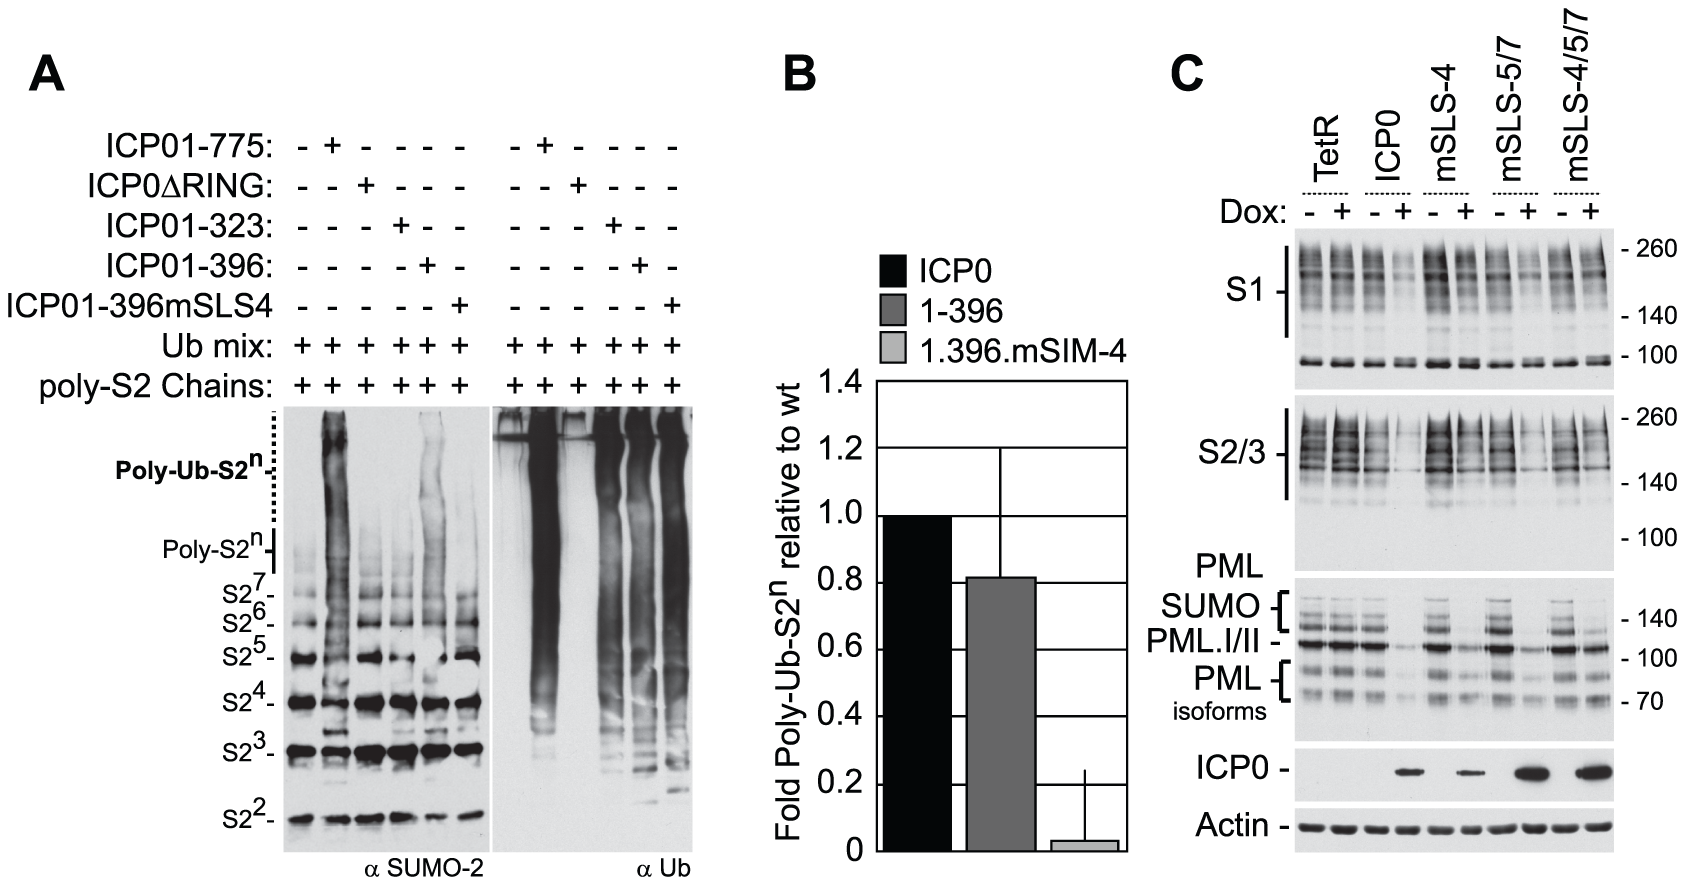 SLS-4 is required for the <i>in vitro</i> ubiquitination of poly-SUMO-2 chains and degradation of SUMO conjugates <i>in vivo</i>.